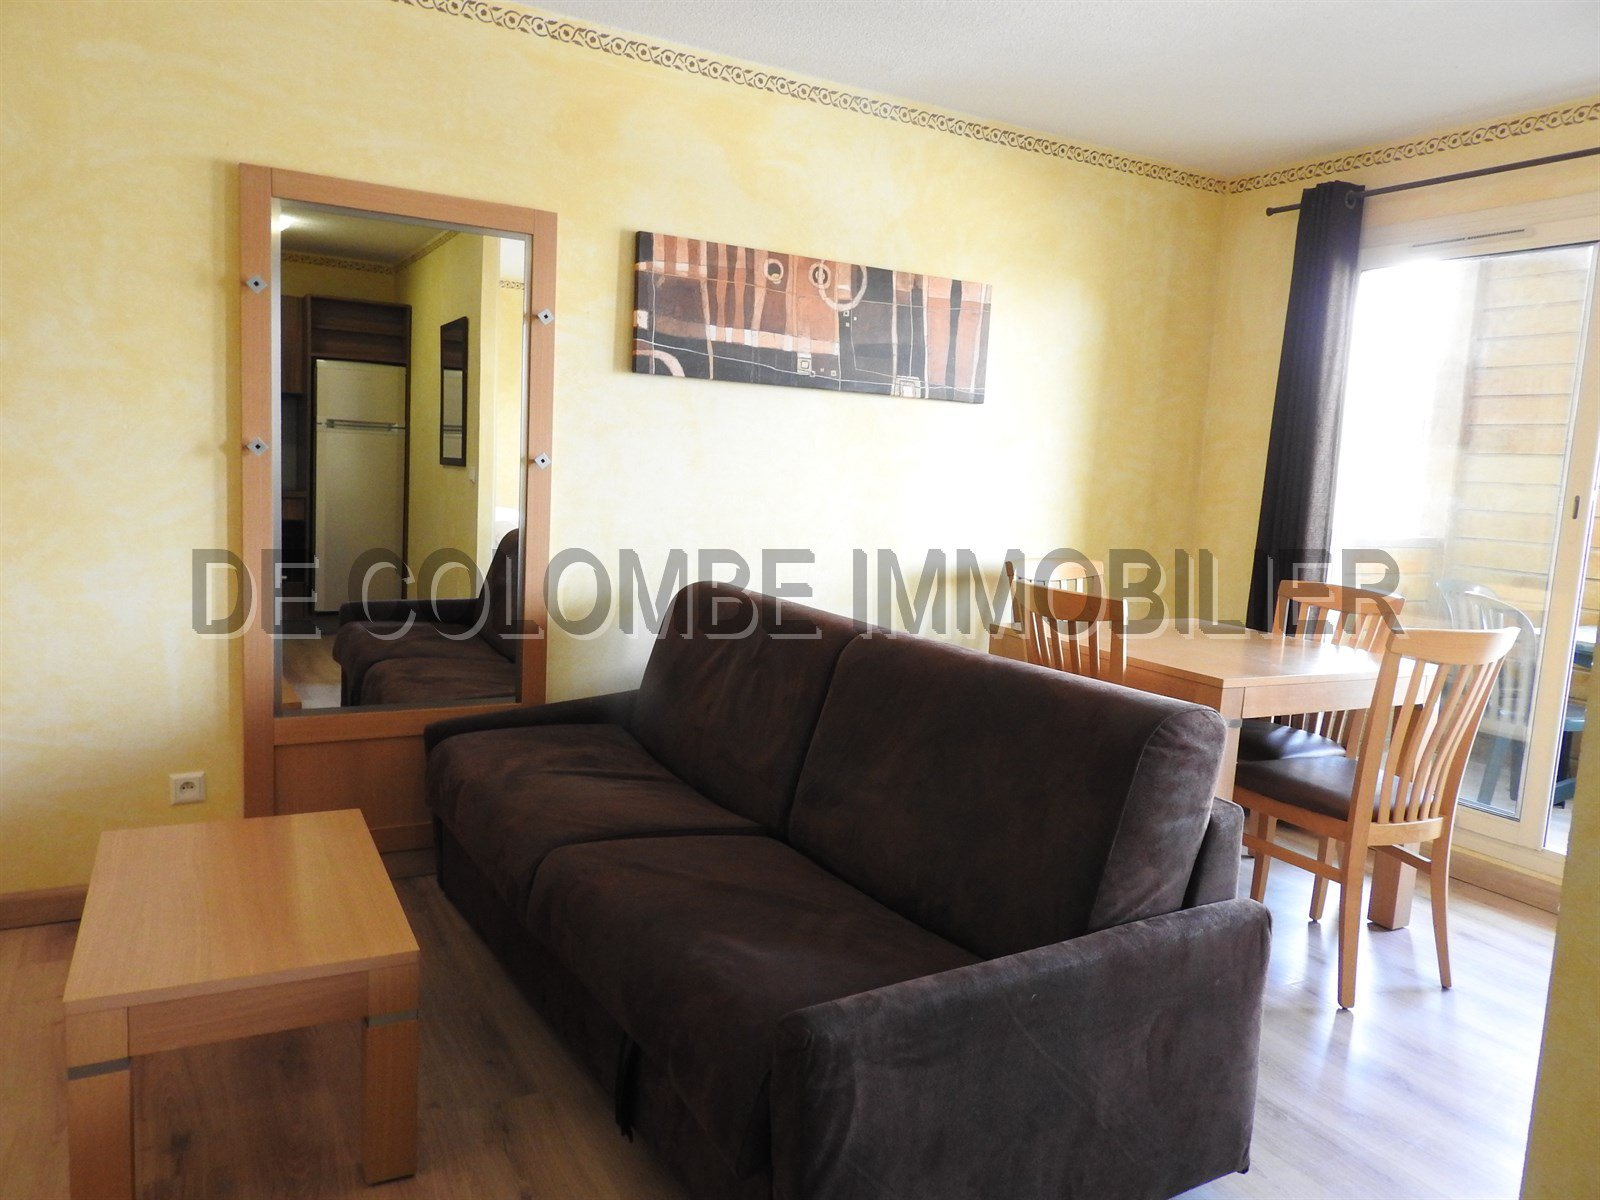 Sale Apartment - Isola 2000 Station